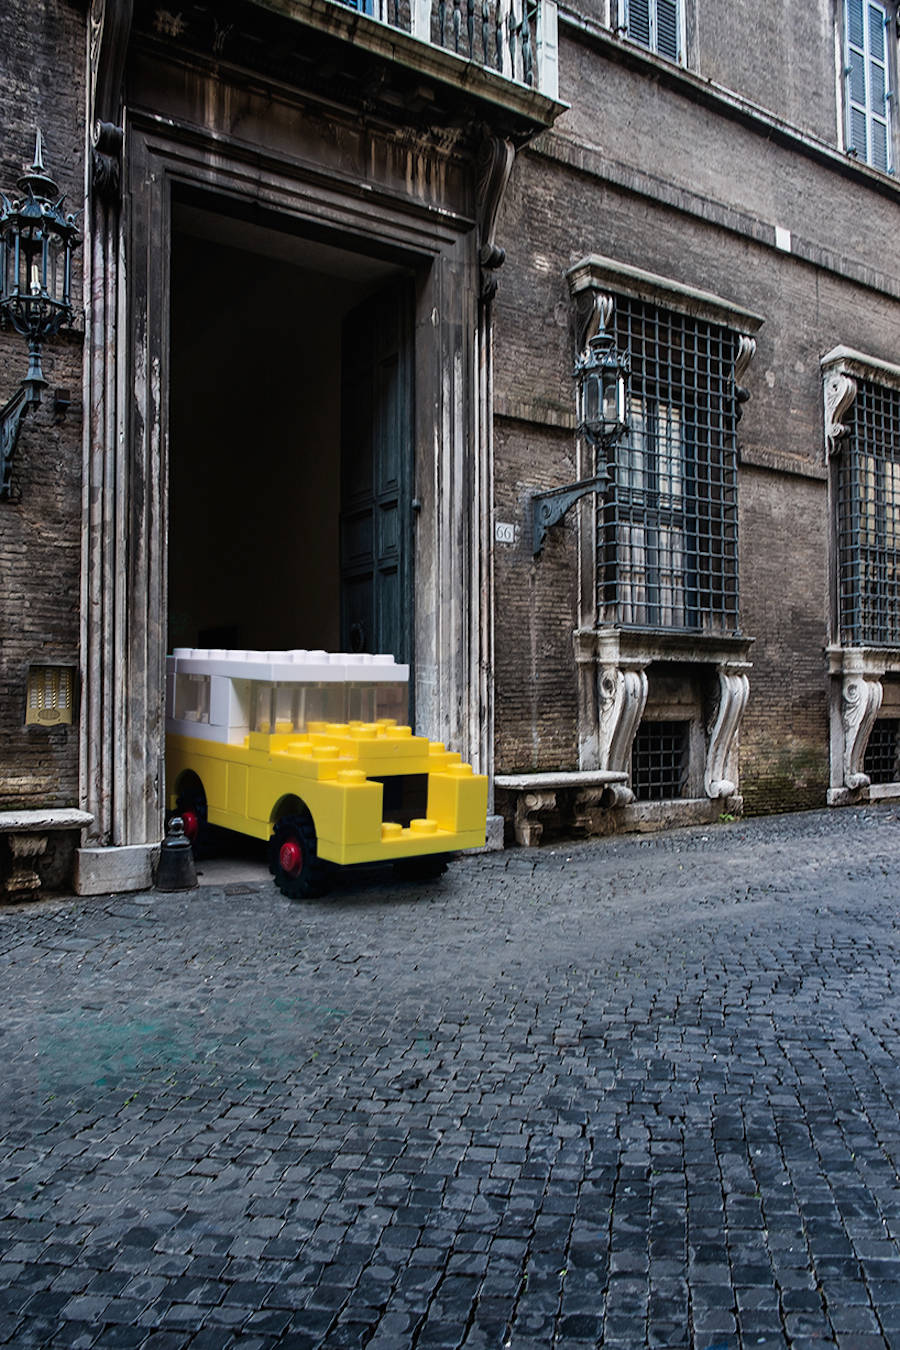 surrealist-scenes-with-lego-vehicles-in-the-streets-1-900x1350